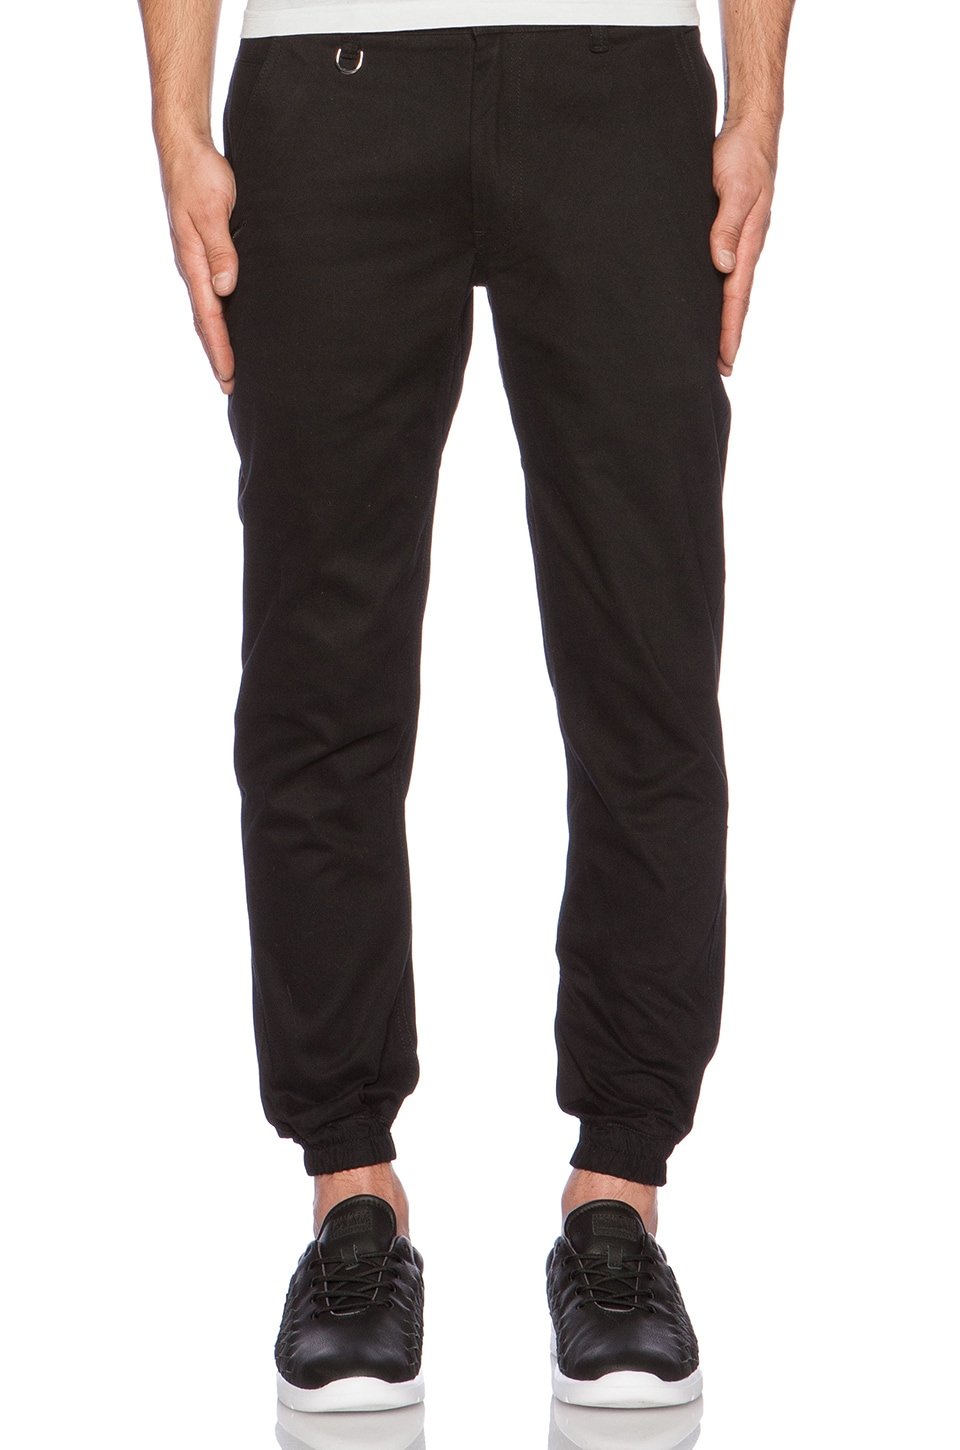 Publish Jogger in Black